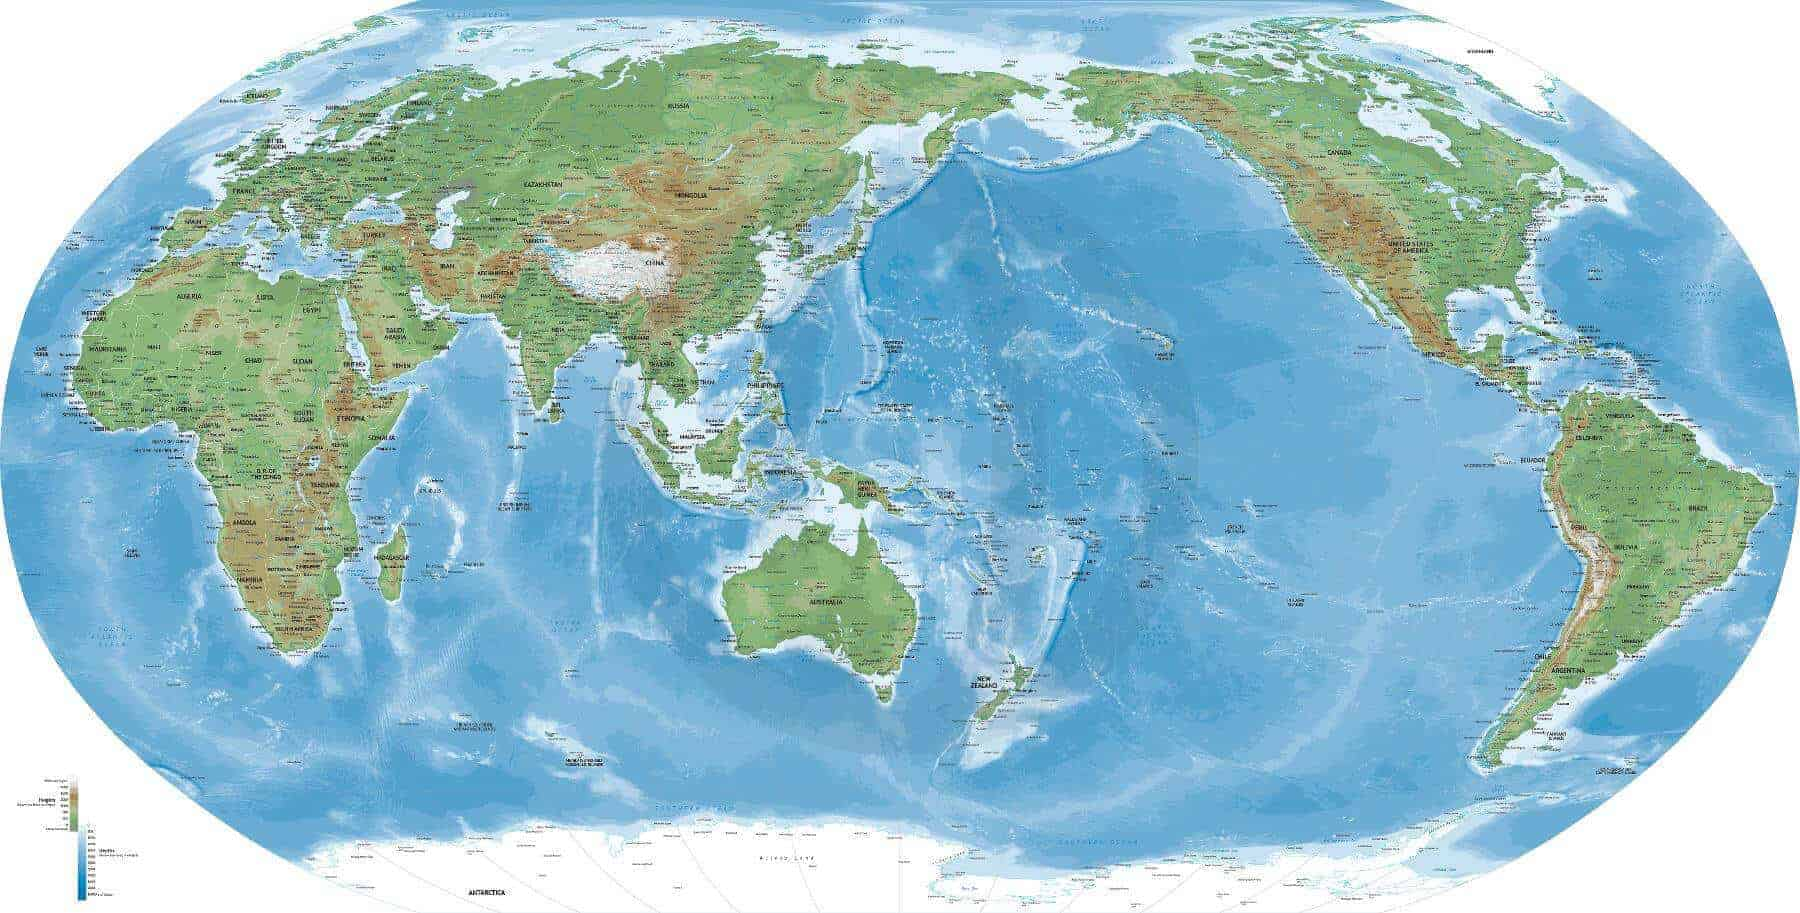 Detailed Map Of Asia.Detailed World Map Robinson Asia Australia Centered One Stop Map